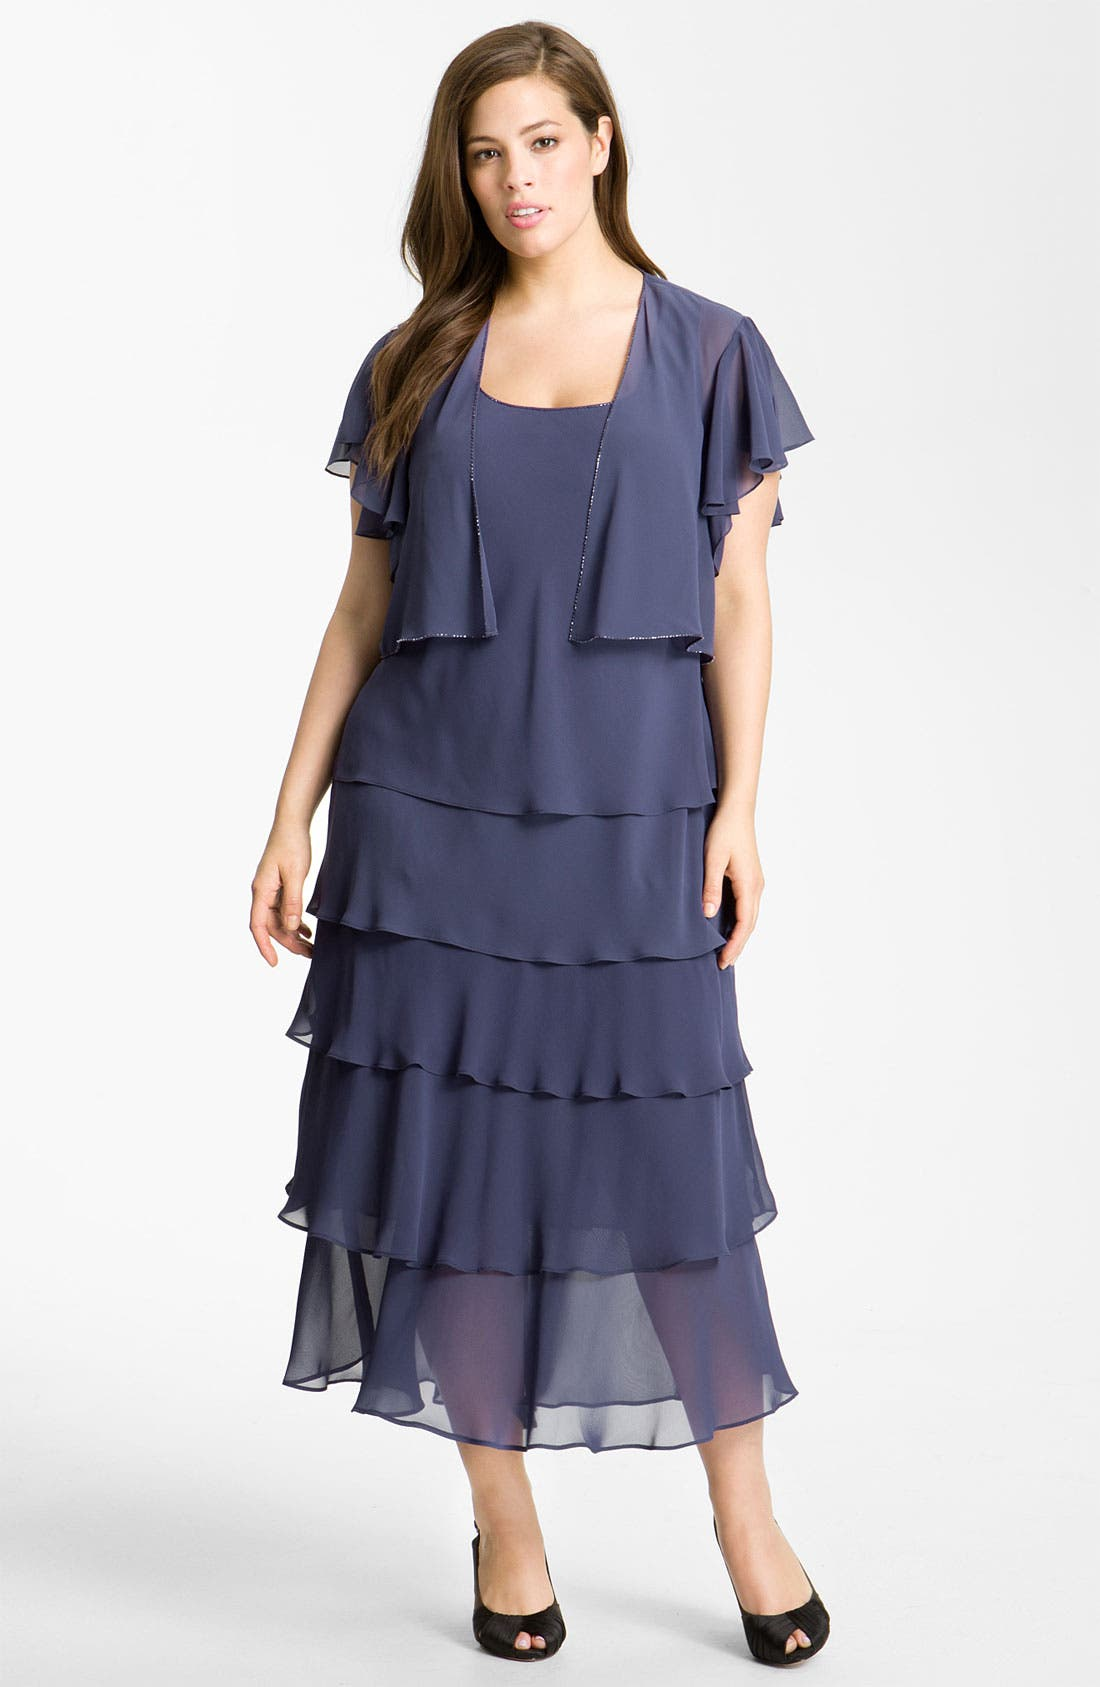 Alternate Image 1 Selected - Alex Evenings Tiered Chiffon Dress & Jacket (Plus)